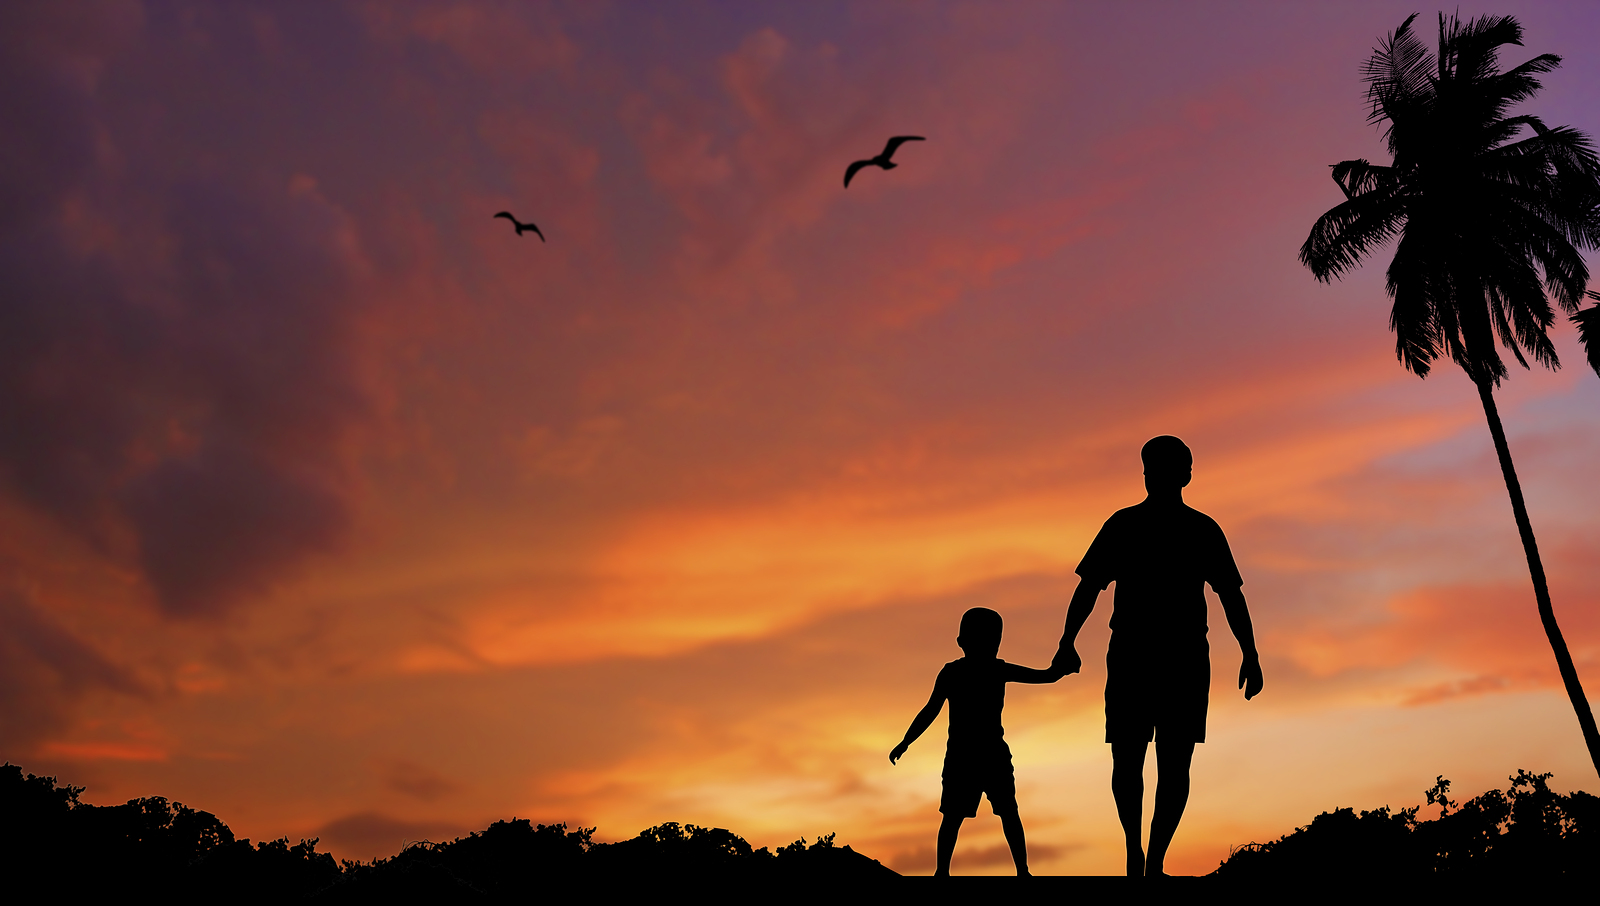 bigstock-Father-And-Sun-Walking-Togethe-24608264.jpg